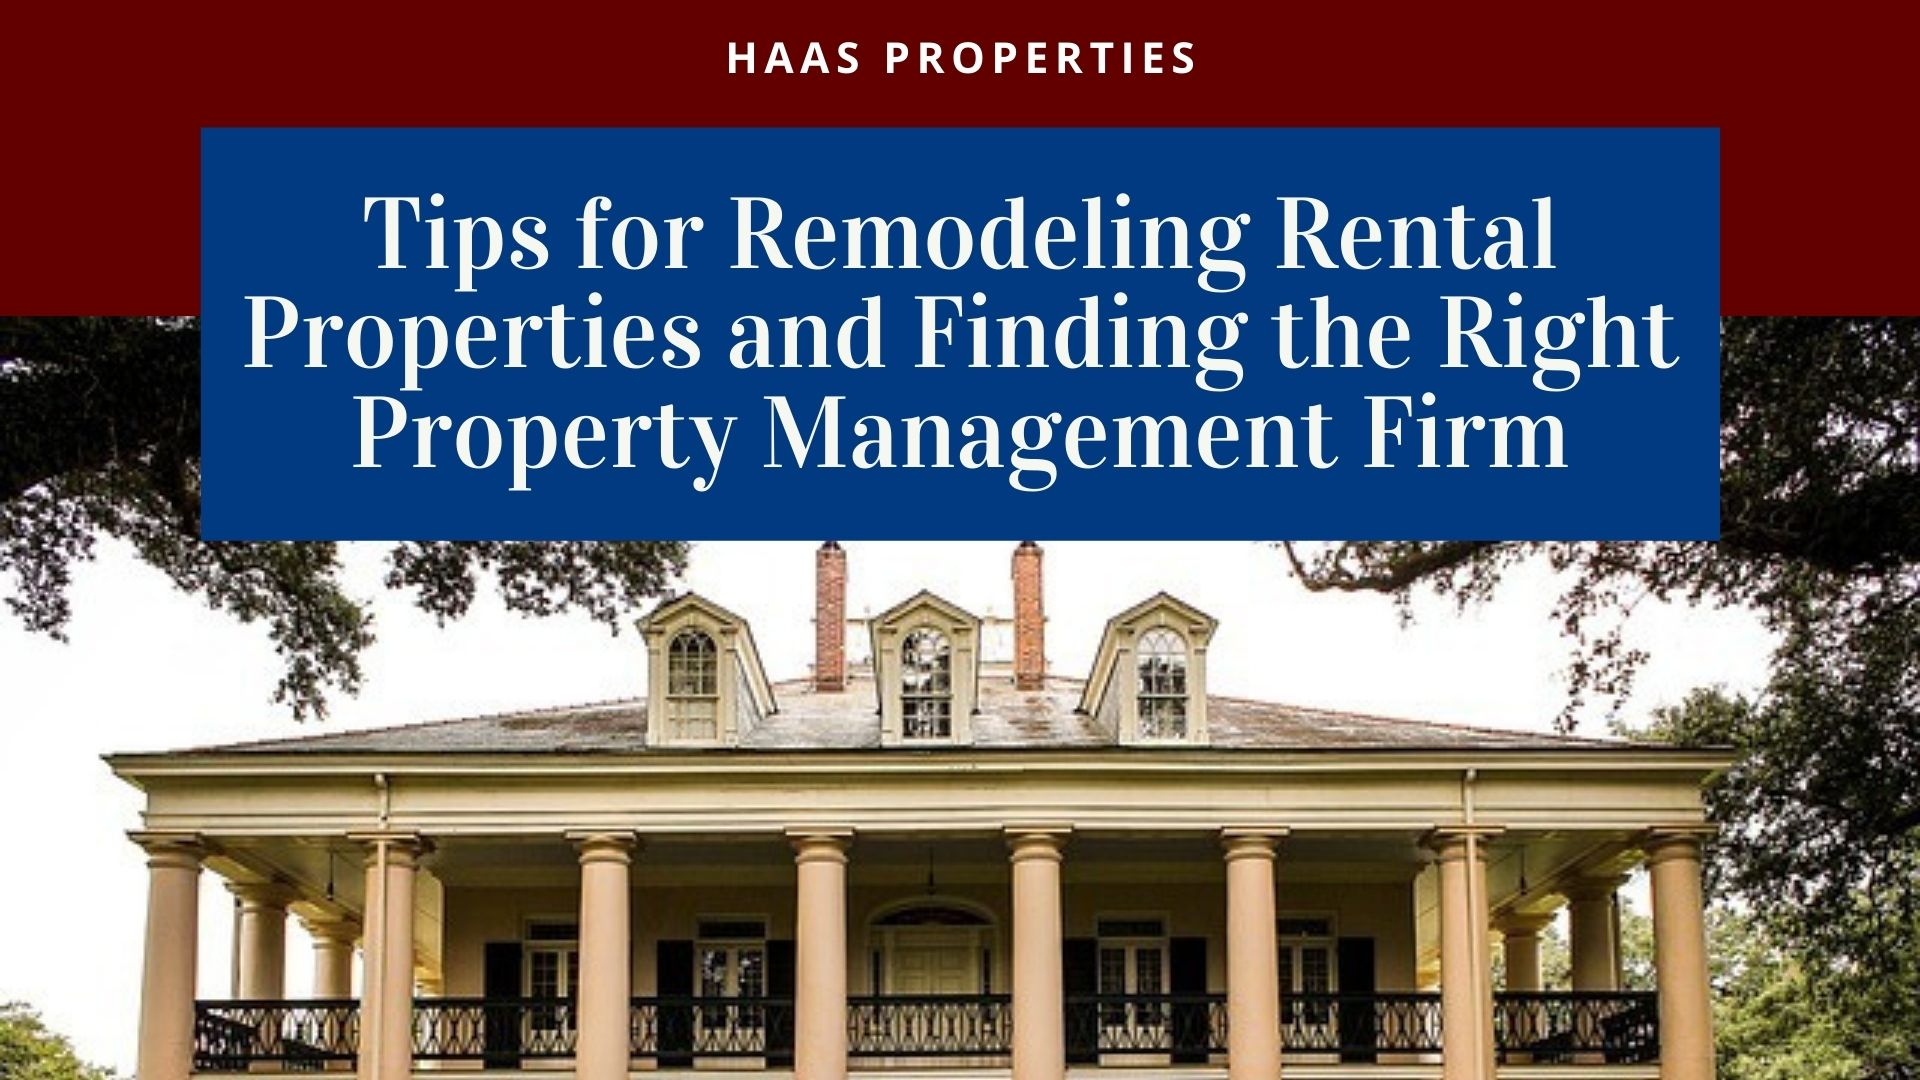 Tips for Remodeling Rental Properties and Finding the Right Property Management Firm